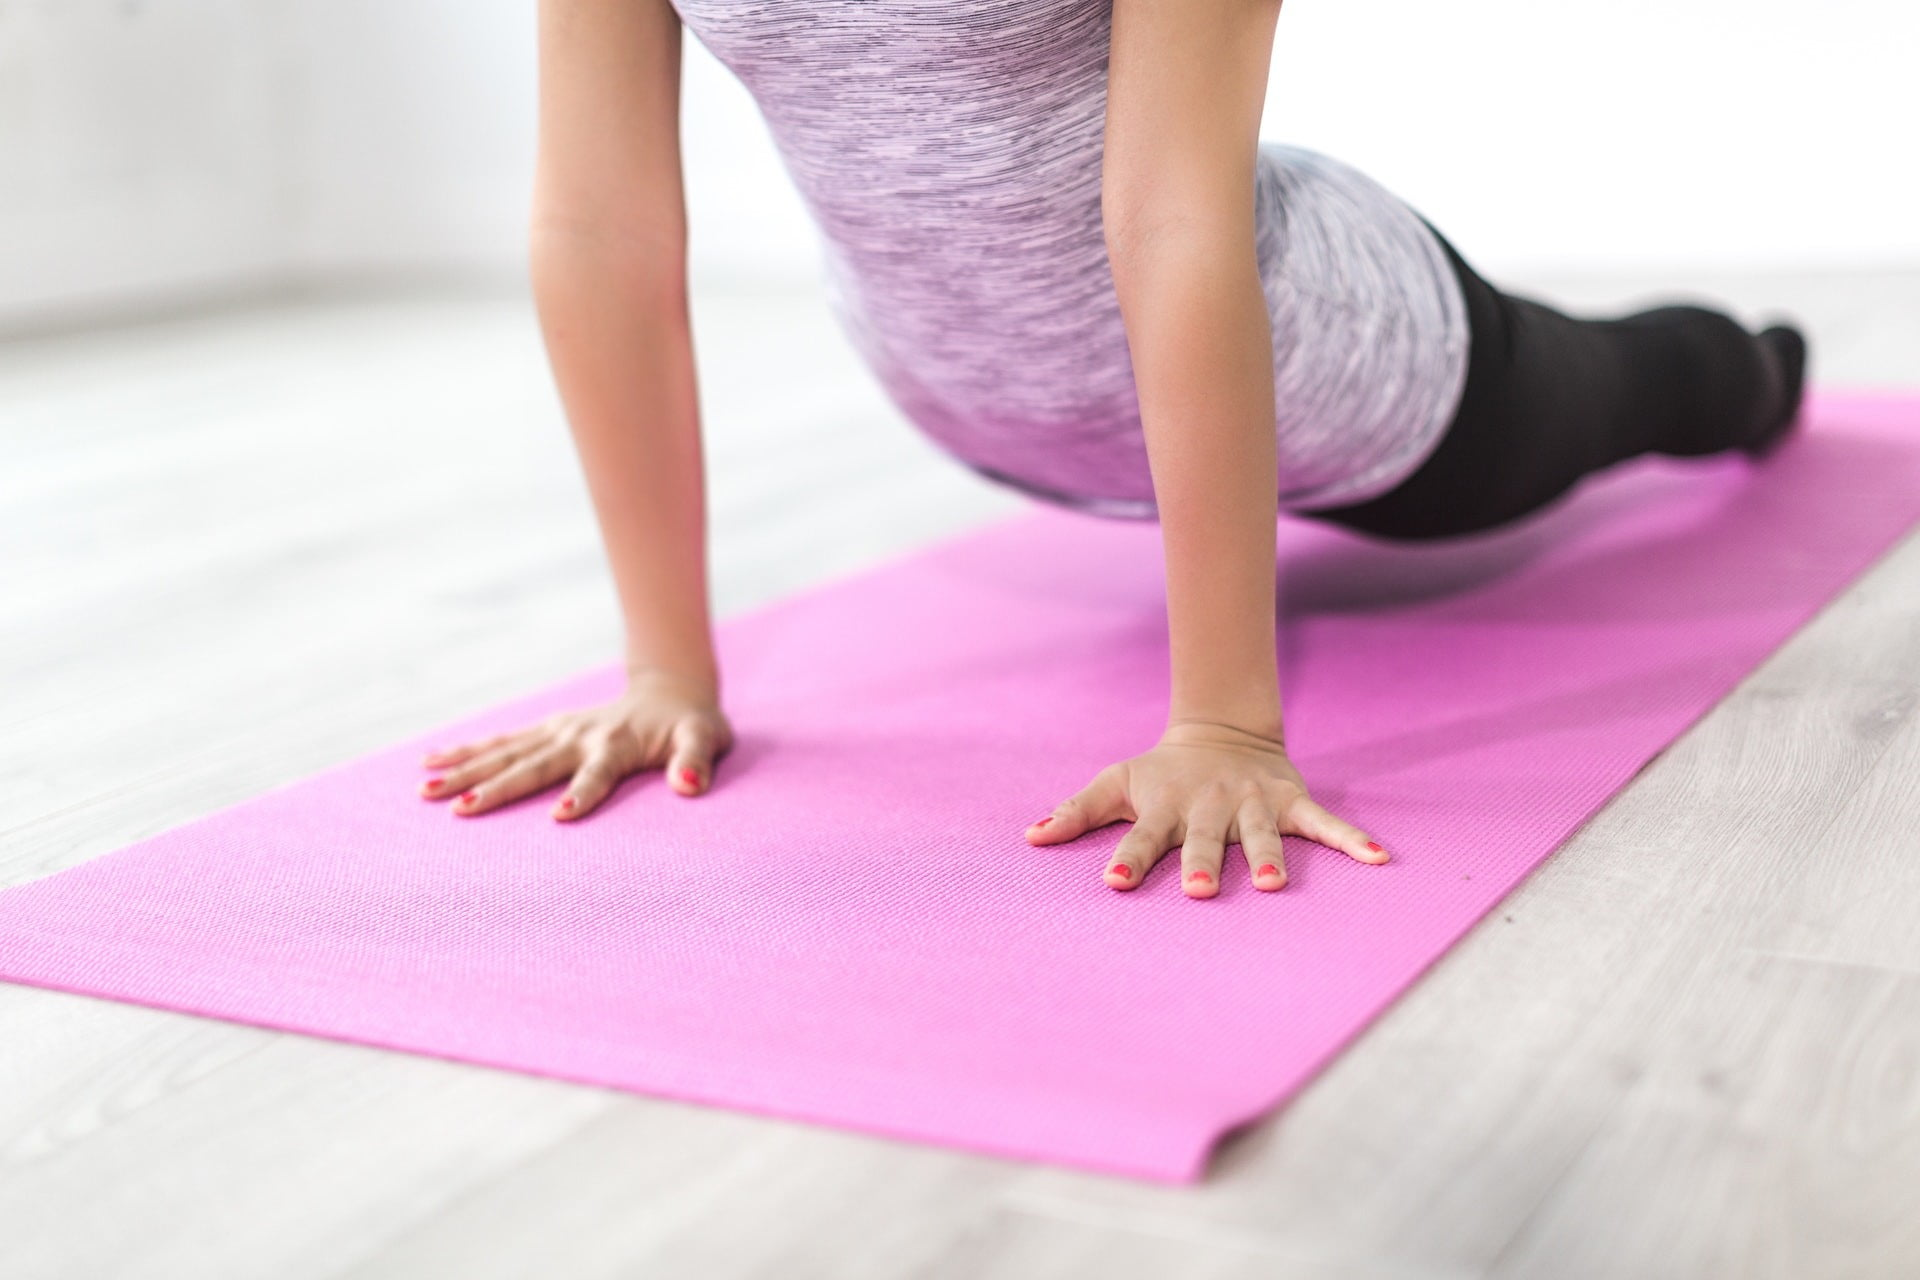 A woman doing yoga on a purple mat.